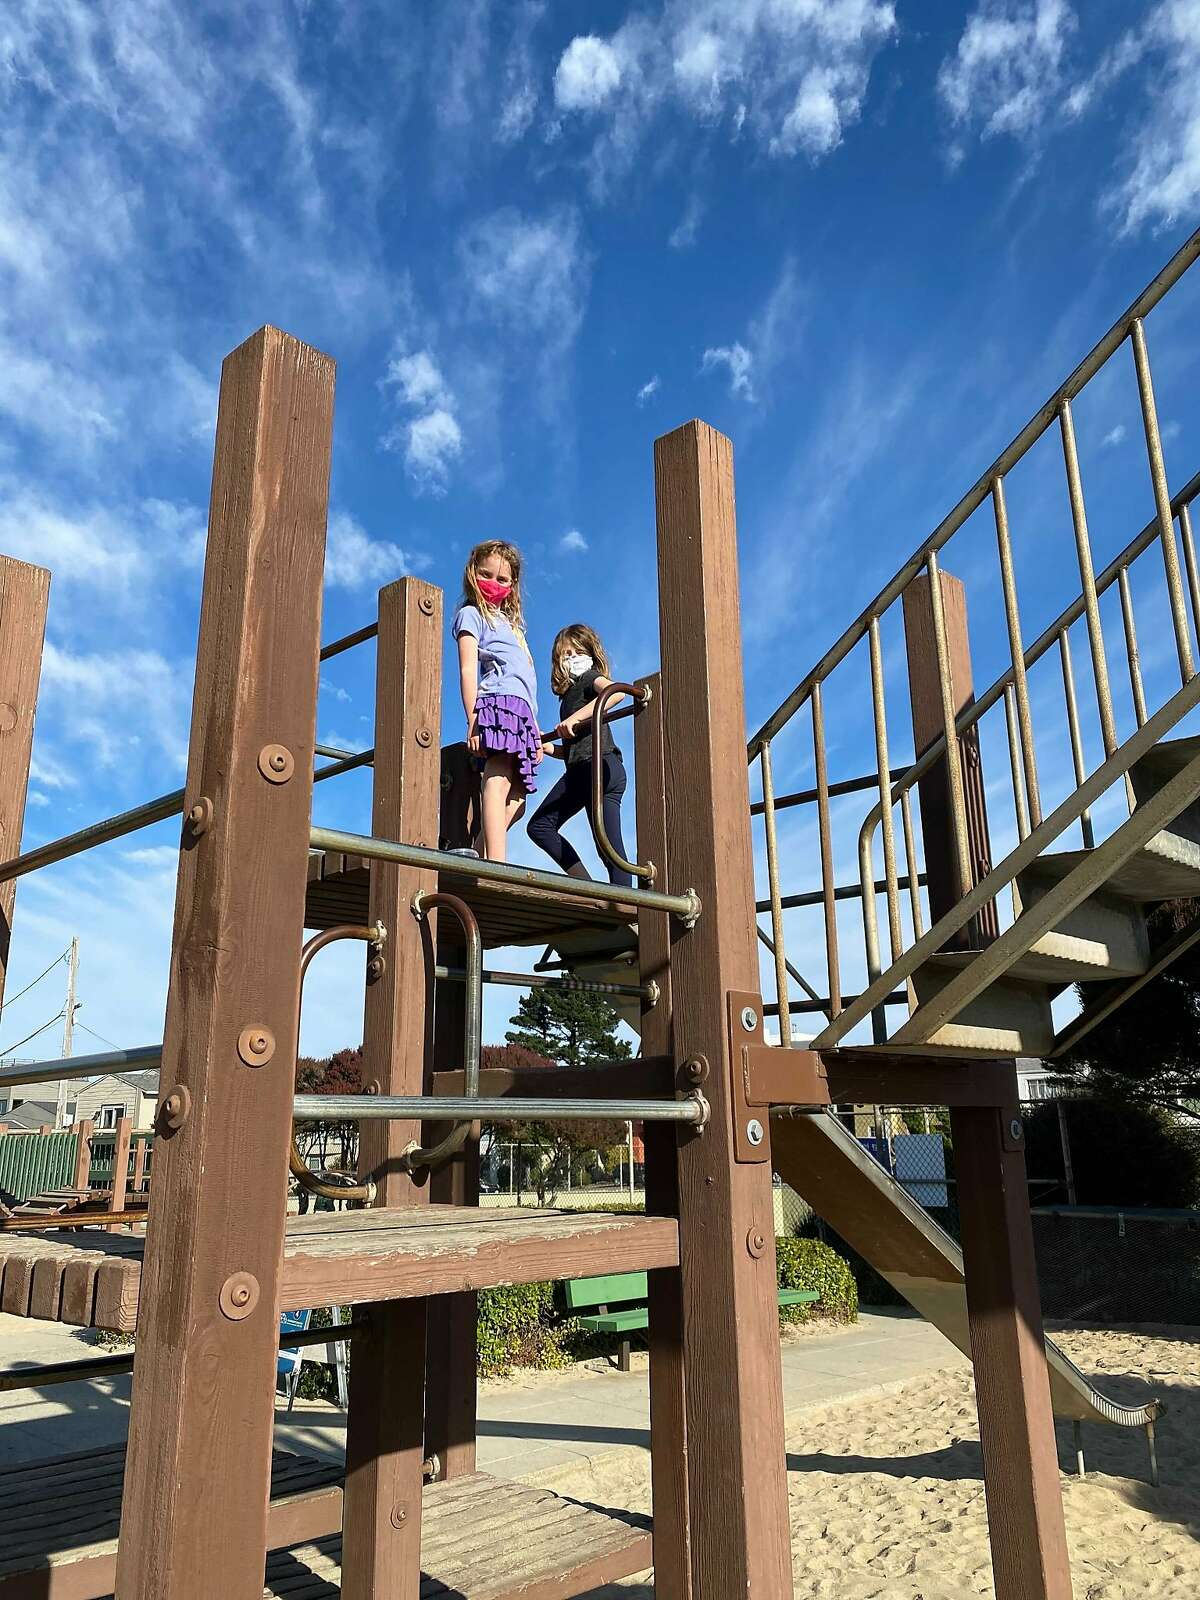 Lara Helland, 7, left, stands on a play structure with her friend at Miraloma Playground on Dec. 6, 2020, just hours before it closes due to a new coronavirus stay-at-home order.